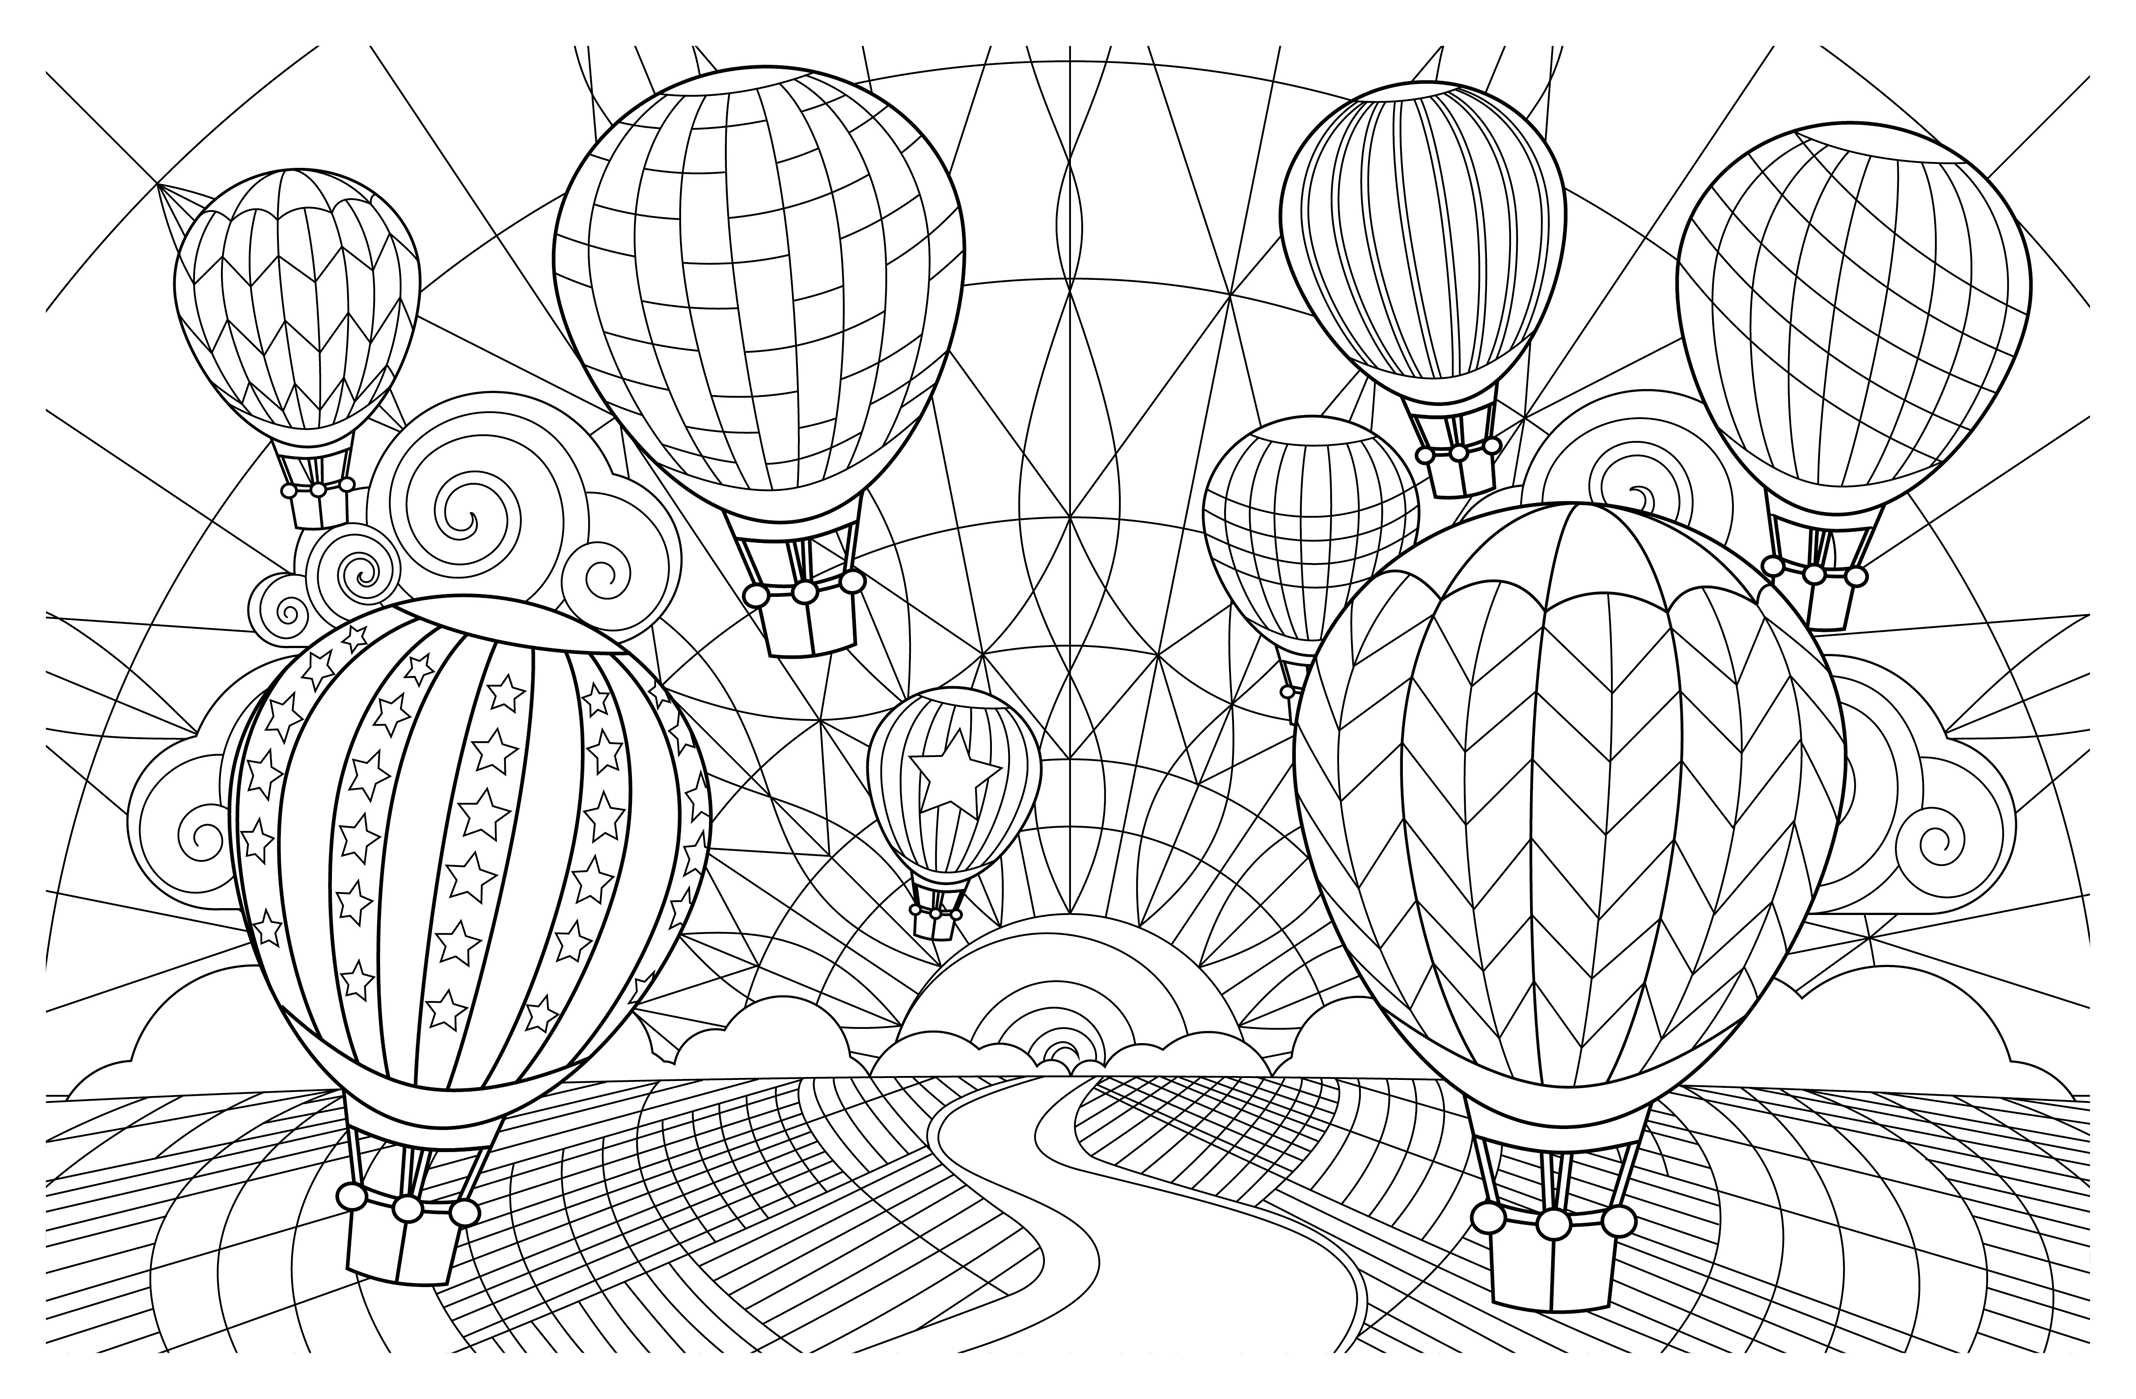 Hot Air Balloon Coloring Sheets New Balloon Coloring Pages as Collection Of Fresh Hot Air Balloons Coloring Pages Collection to Print